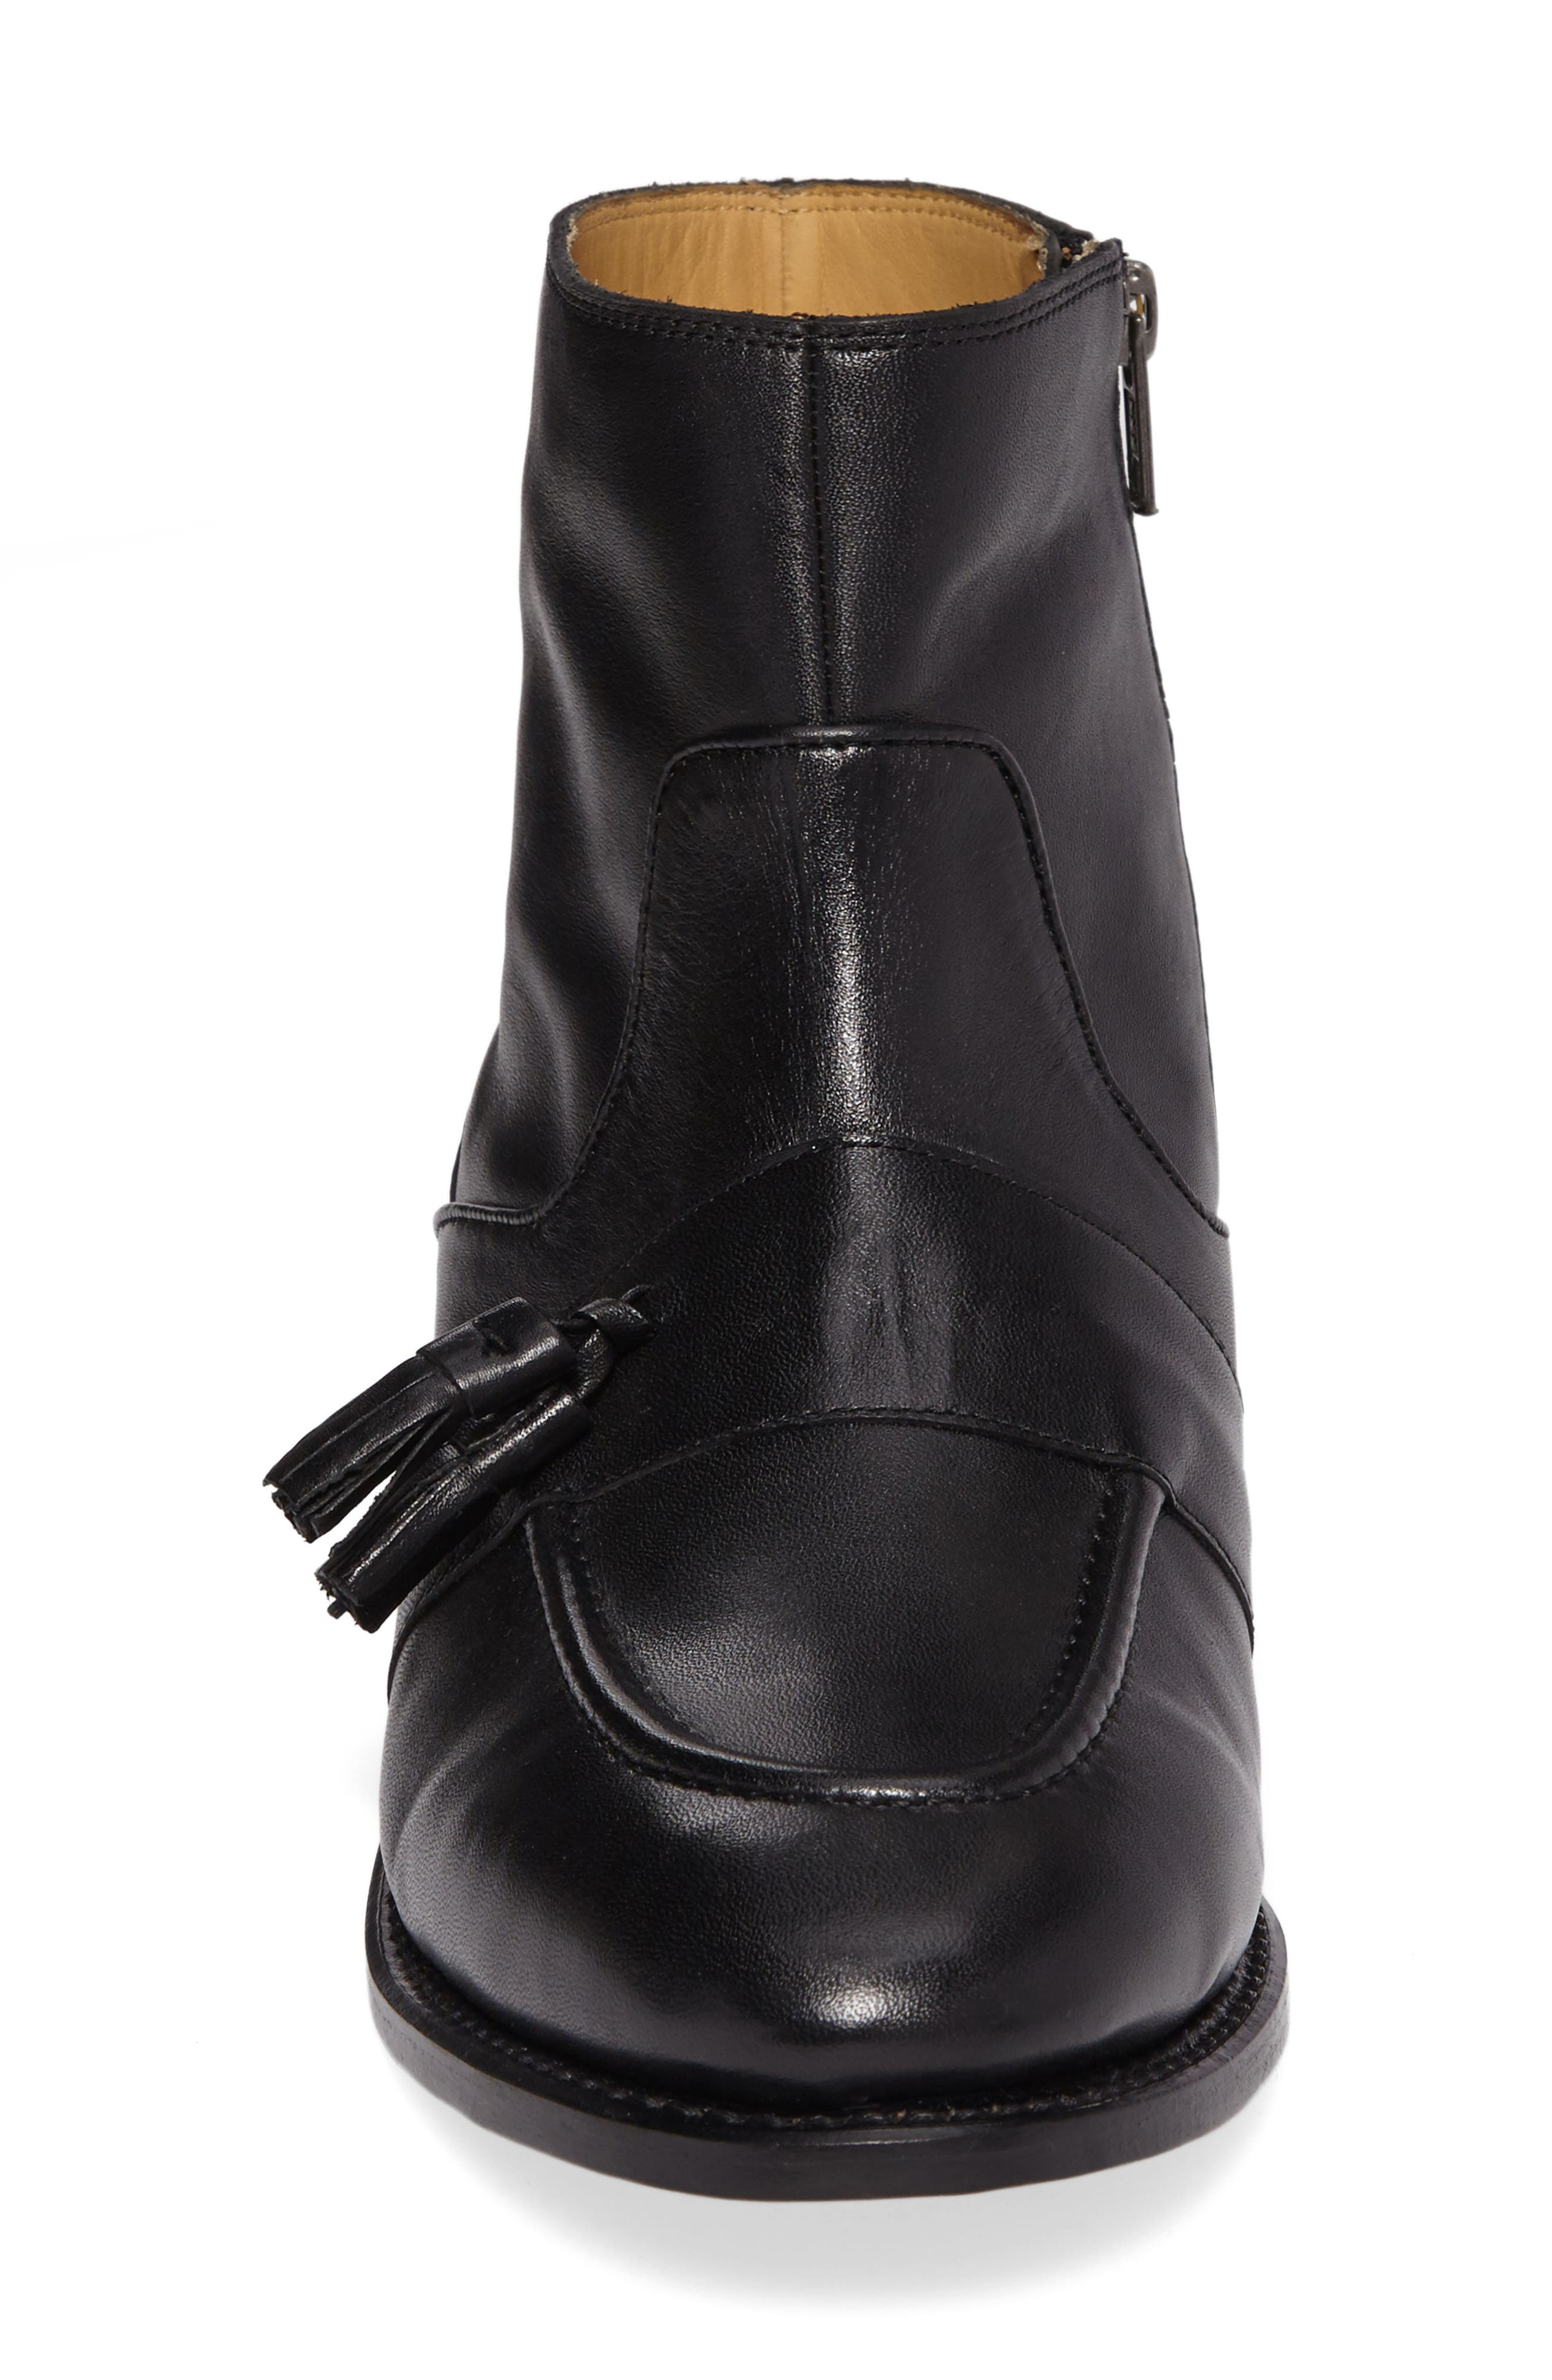 MICHAEL BASTIAN,                             Sidney Zip Boot,                             Alternate thumbnail 4, color,                             011